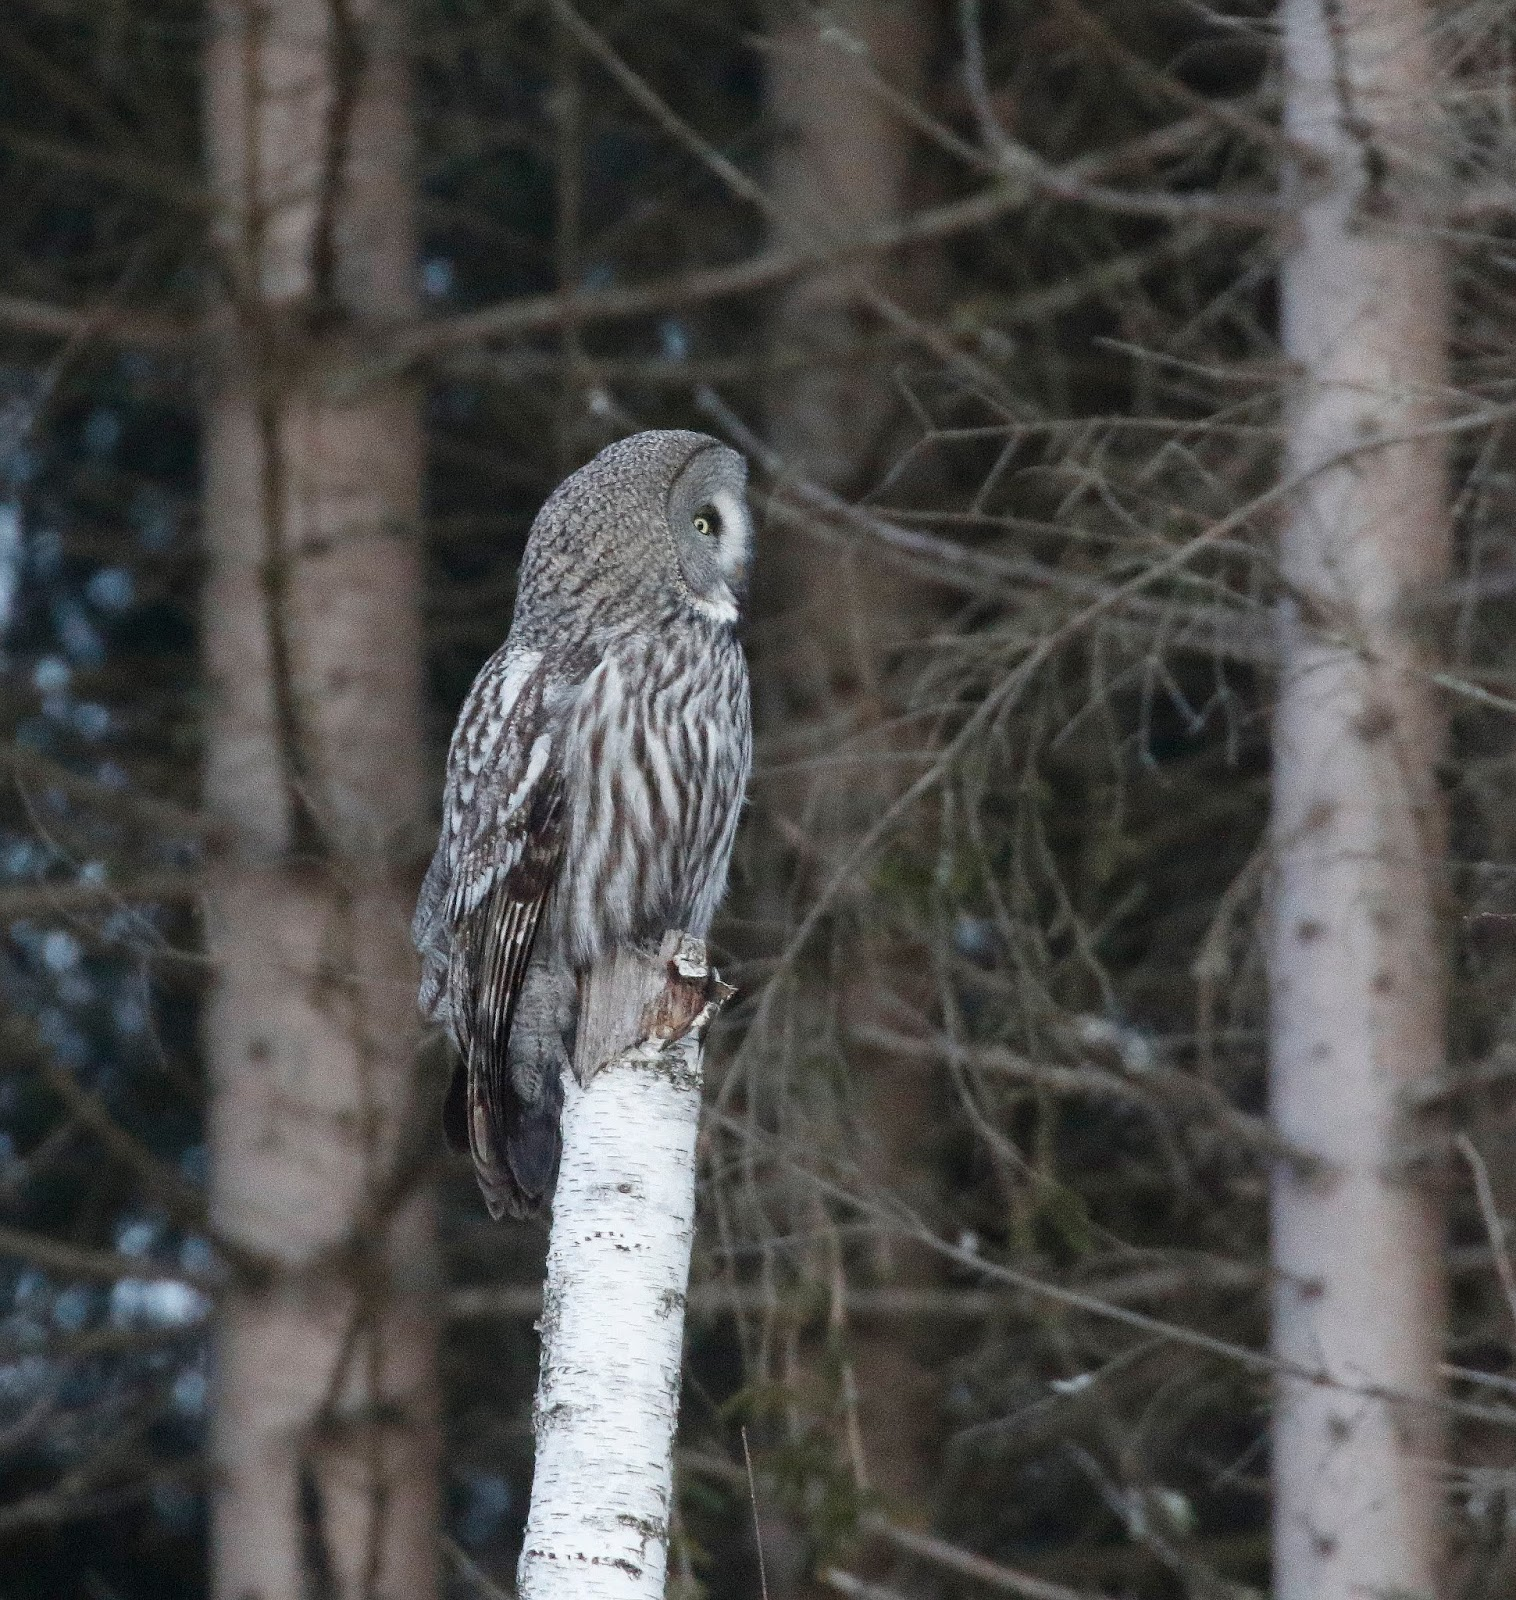 Black Audi Birding: A Great Grey Owl in The Land of the ...